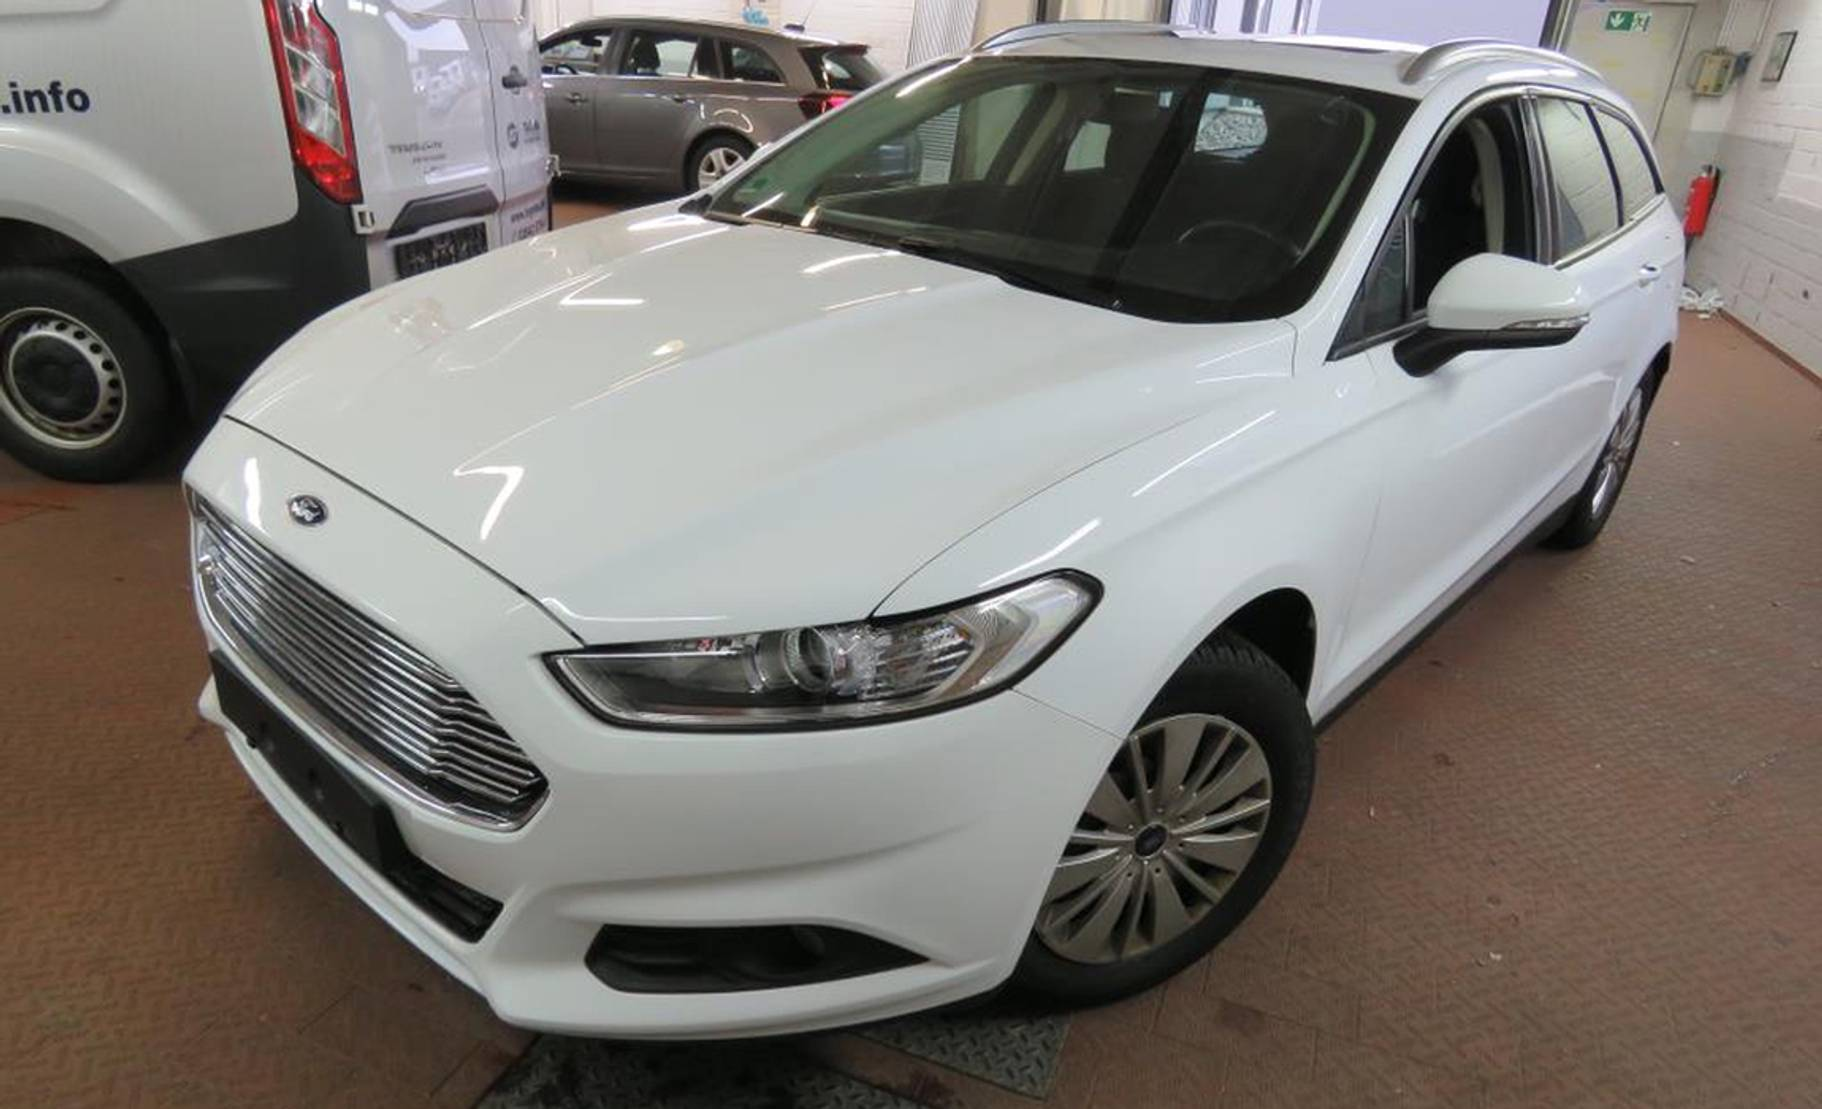 Ford Mondeo Turnier 1.6 TDCi Trend NAVI/PANORAMA/LM detail1